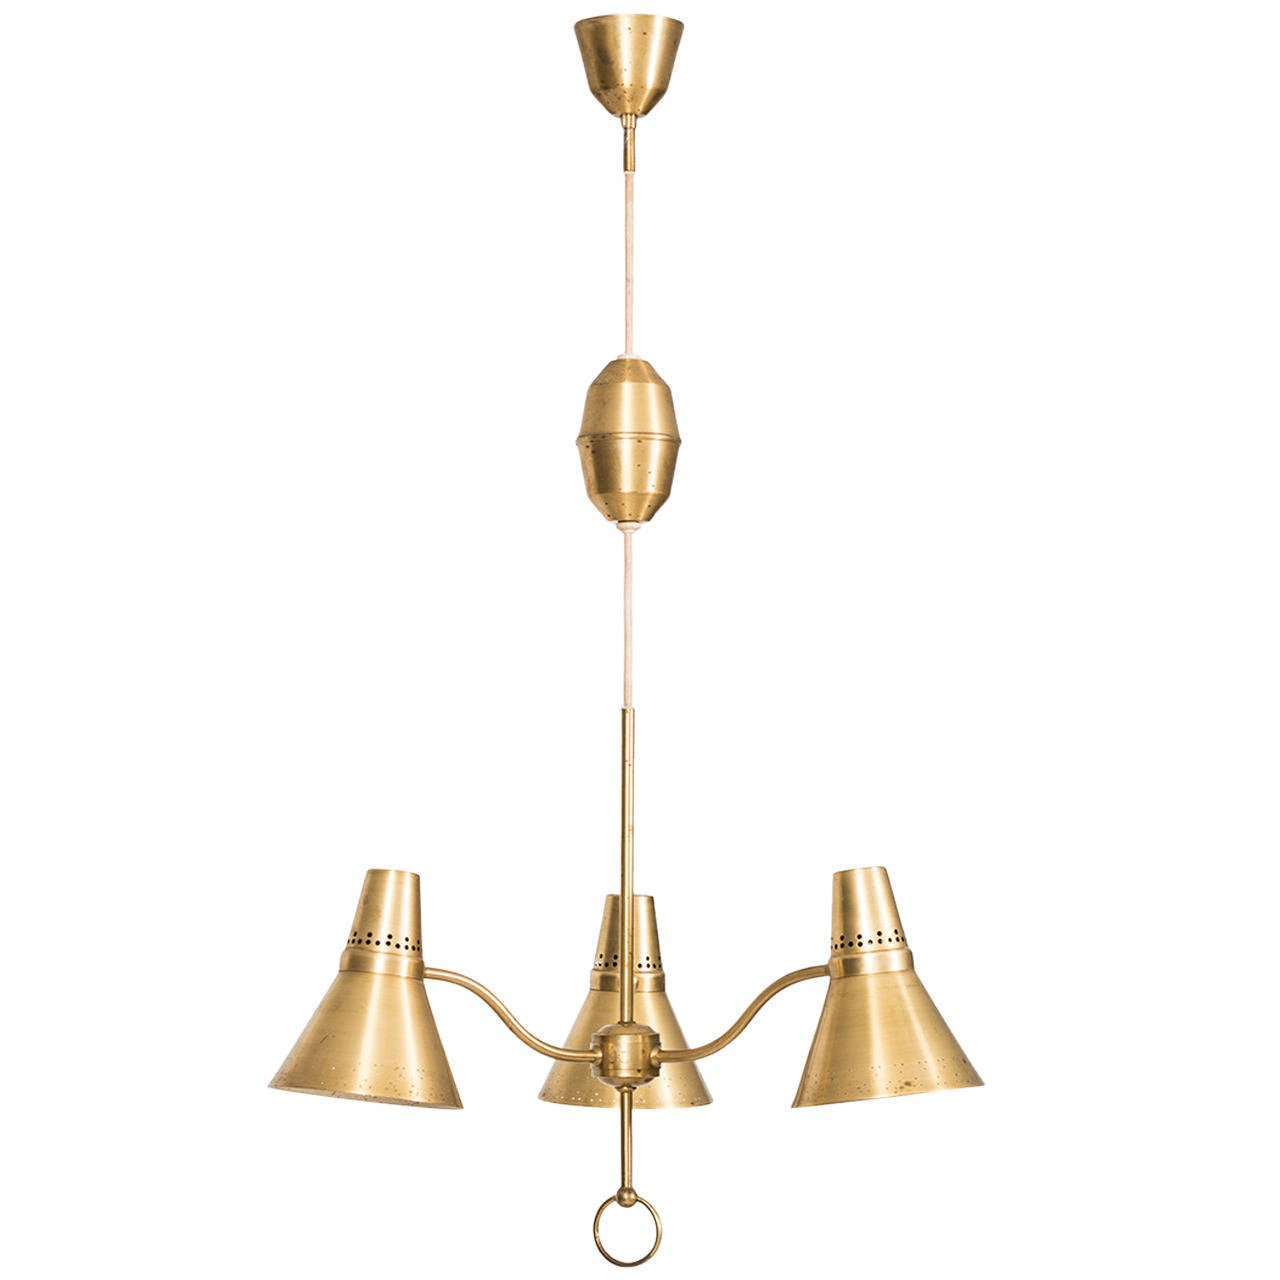 Height Adjustable Led Pendant Light Drop: Height Adjustable Ceiling Lamp In Brass By AB E. Hansson